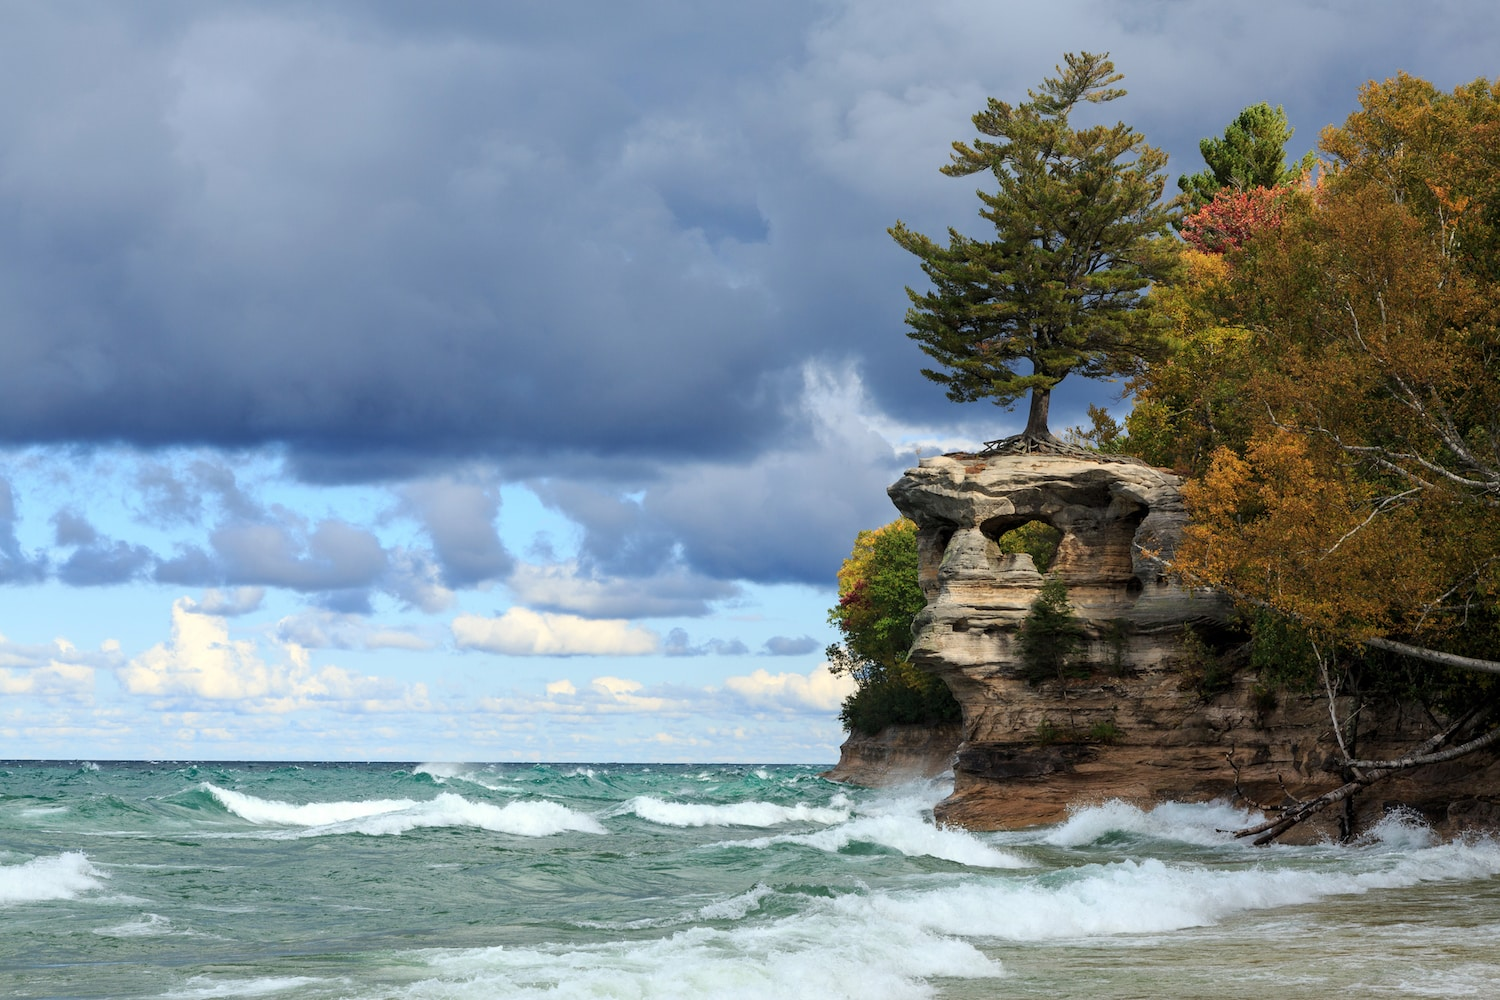 Chapel Rock is battered by crashing waves from Lake Superior at Pictured Rocks National Lakeshore in the Upper Peninsula of Michigan (Chapel Rock is battered by crashing waves from Lake Superior at Pictured Rocks National Lakeshore in the Upper Penins